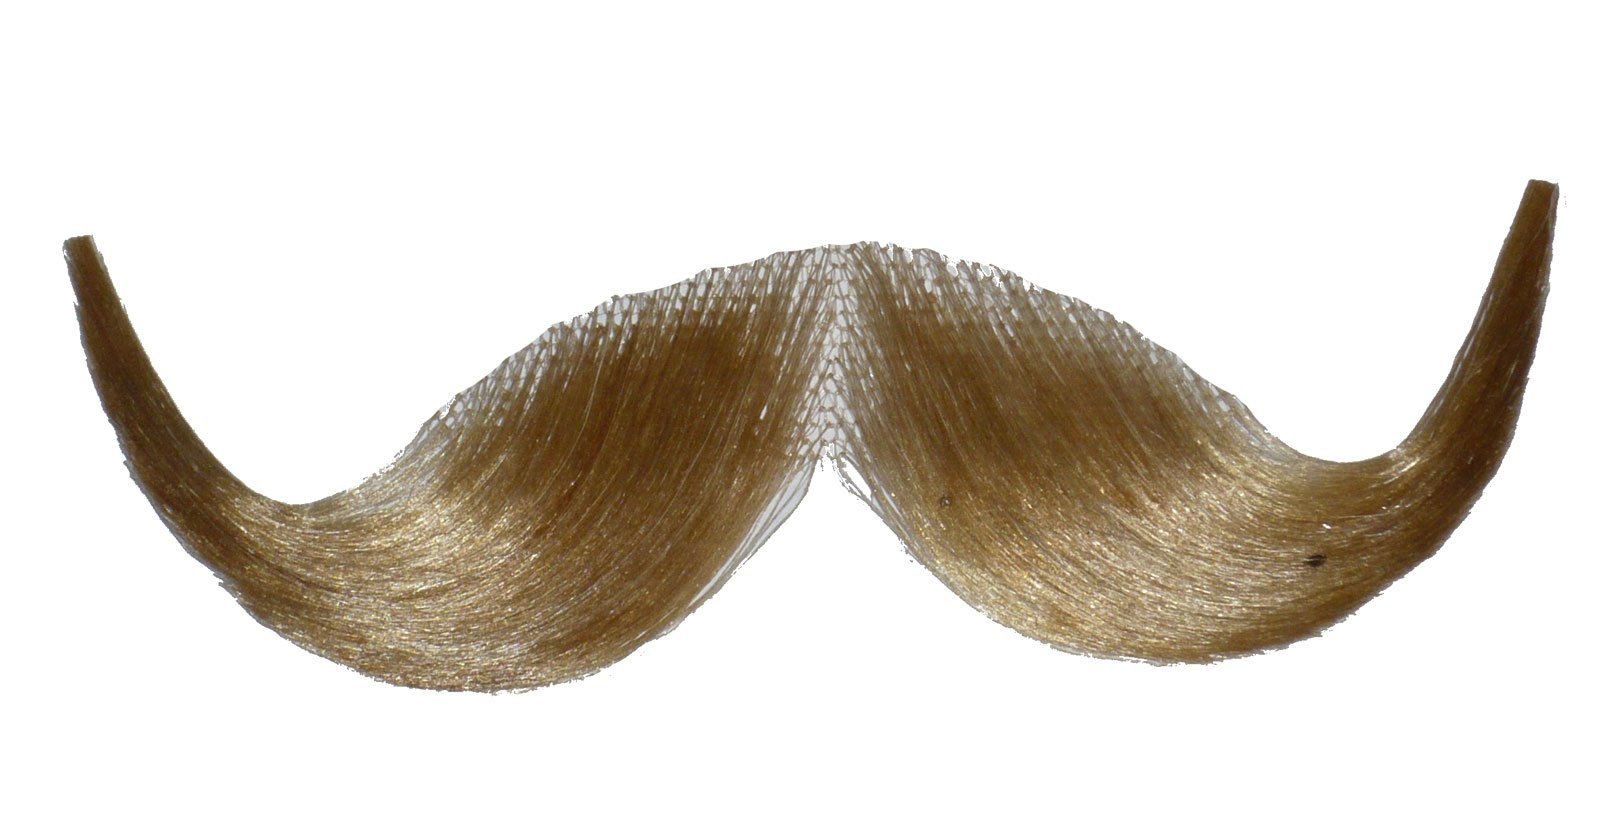 2013 (Blonde) Human Hair Mustache Handlebar Mustache Includes 6 Free Adhesive Strips